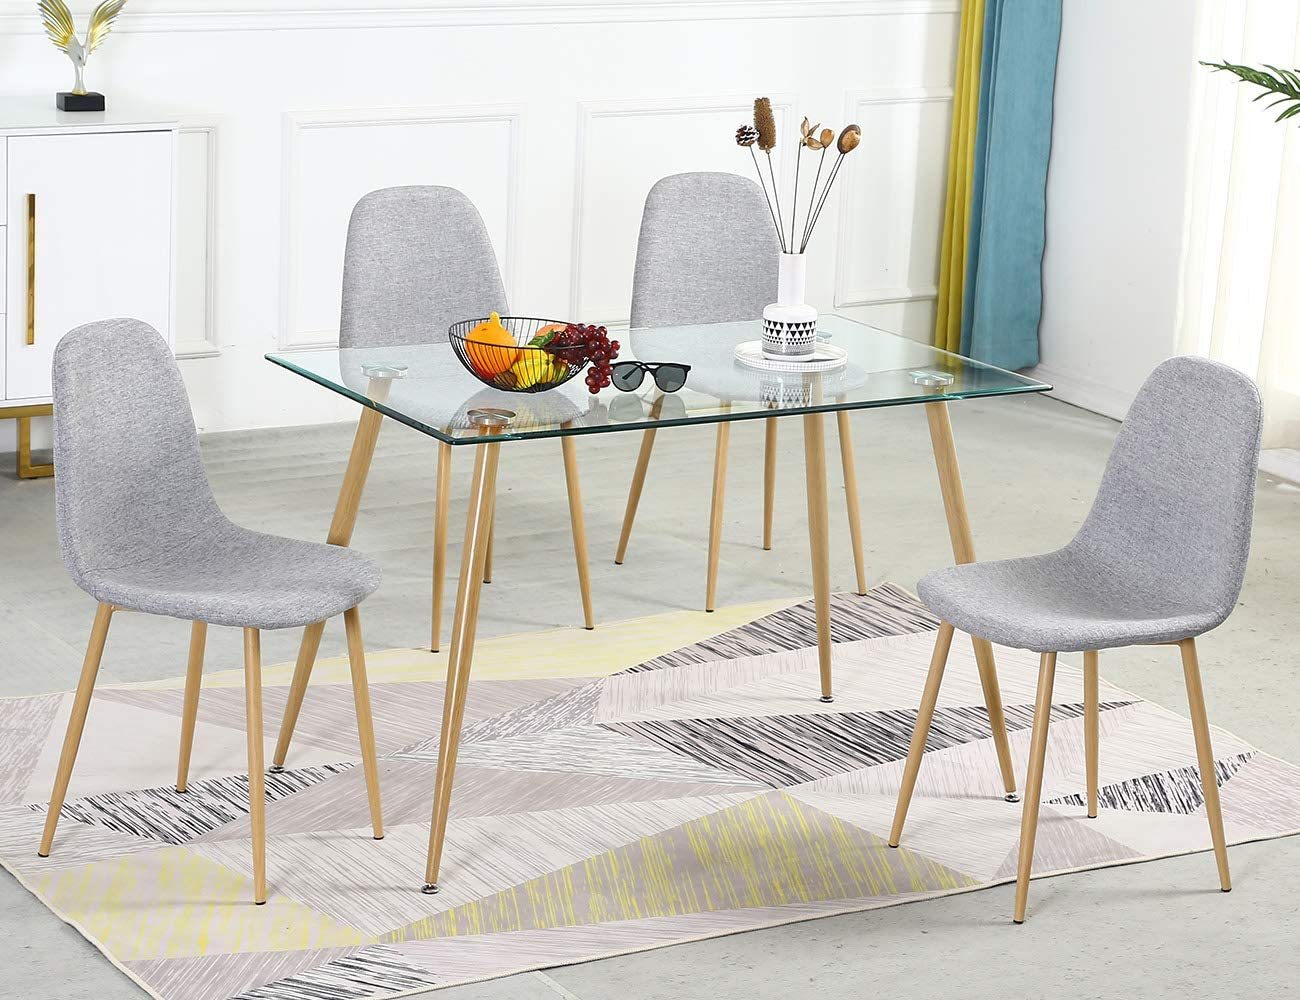 Amazon Com Bacyion Glass Dining Table Set For 4 Modern Kitchen Table And Chairs Set For 4 Tempered Glass Dining Room Table Set And Velvet Dining Chairs 5 Pieces Dining Table Set For